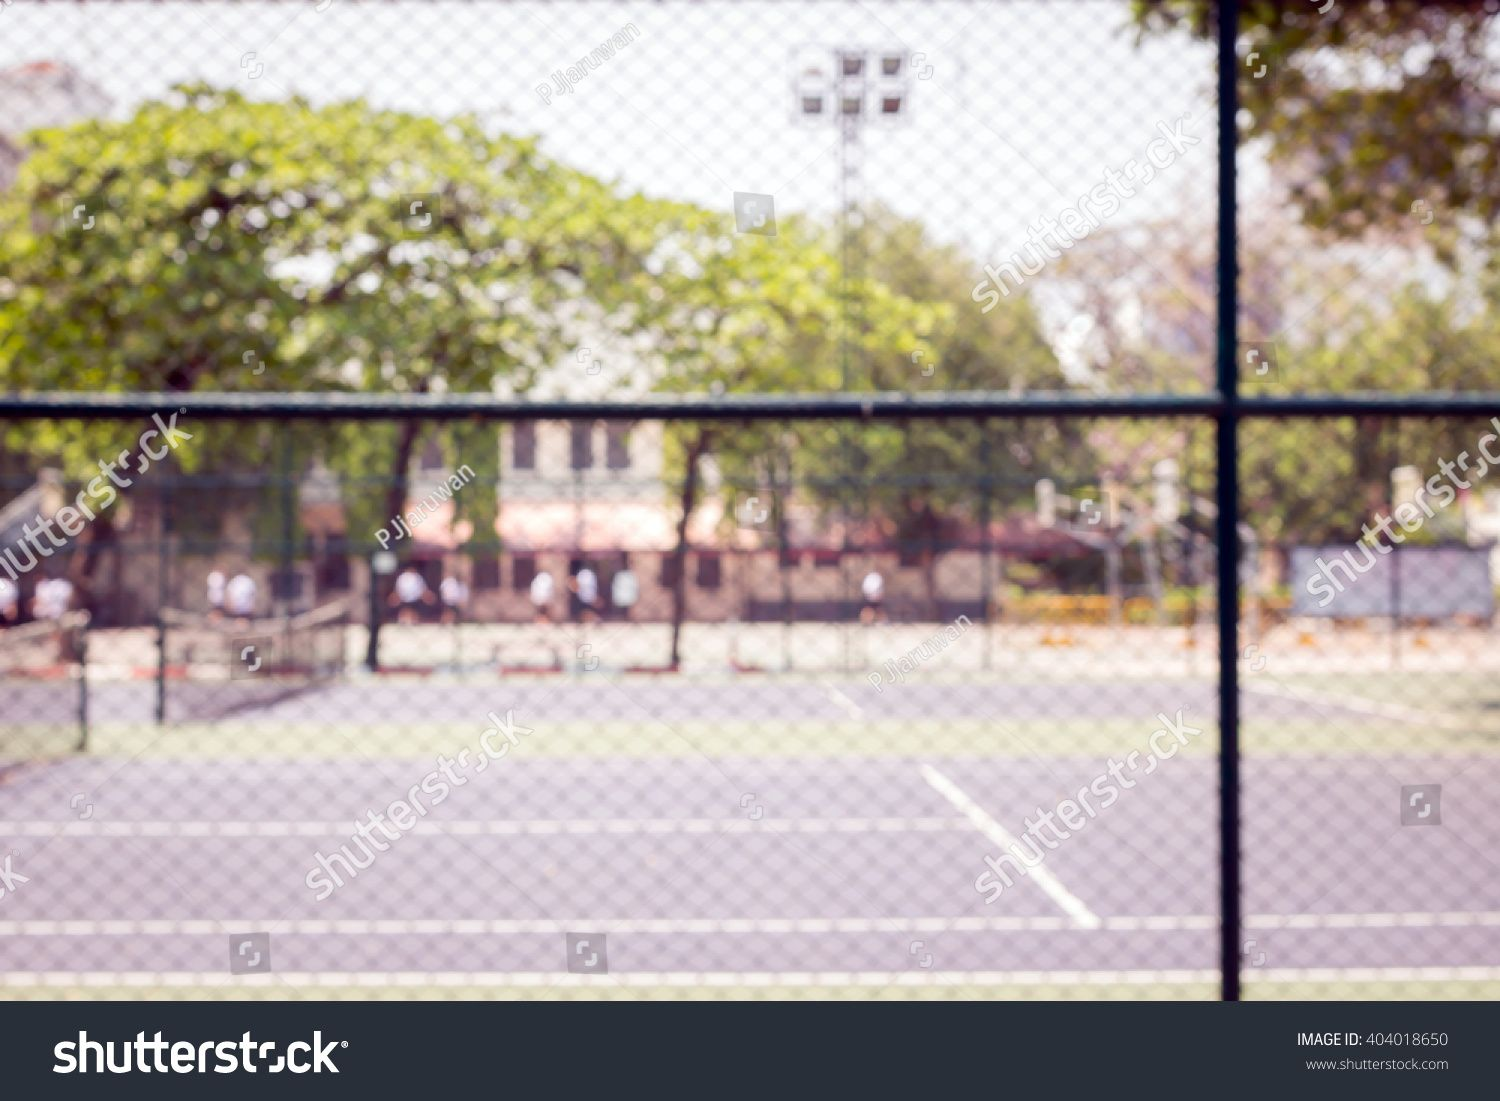 Defocused And Blurred Image For Background Of Tennis And Basketball Court Behind Fence Mesh Netting Ad Business Card Black Professional Business Cards Tennis